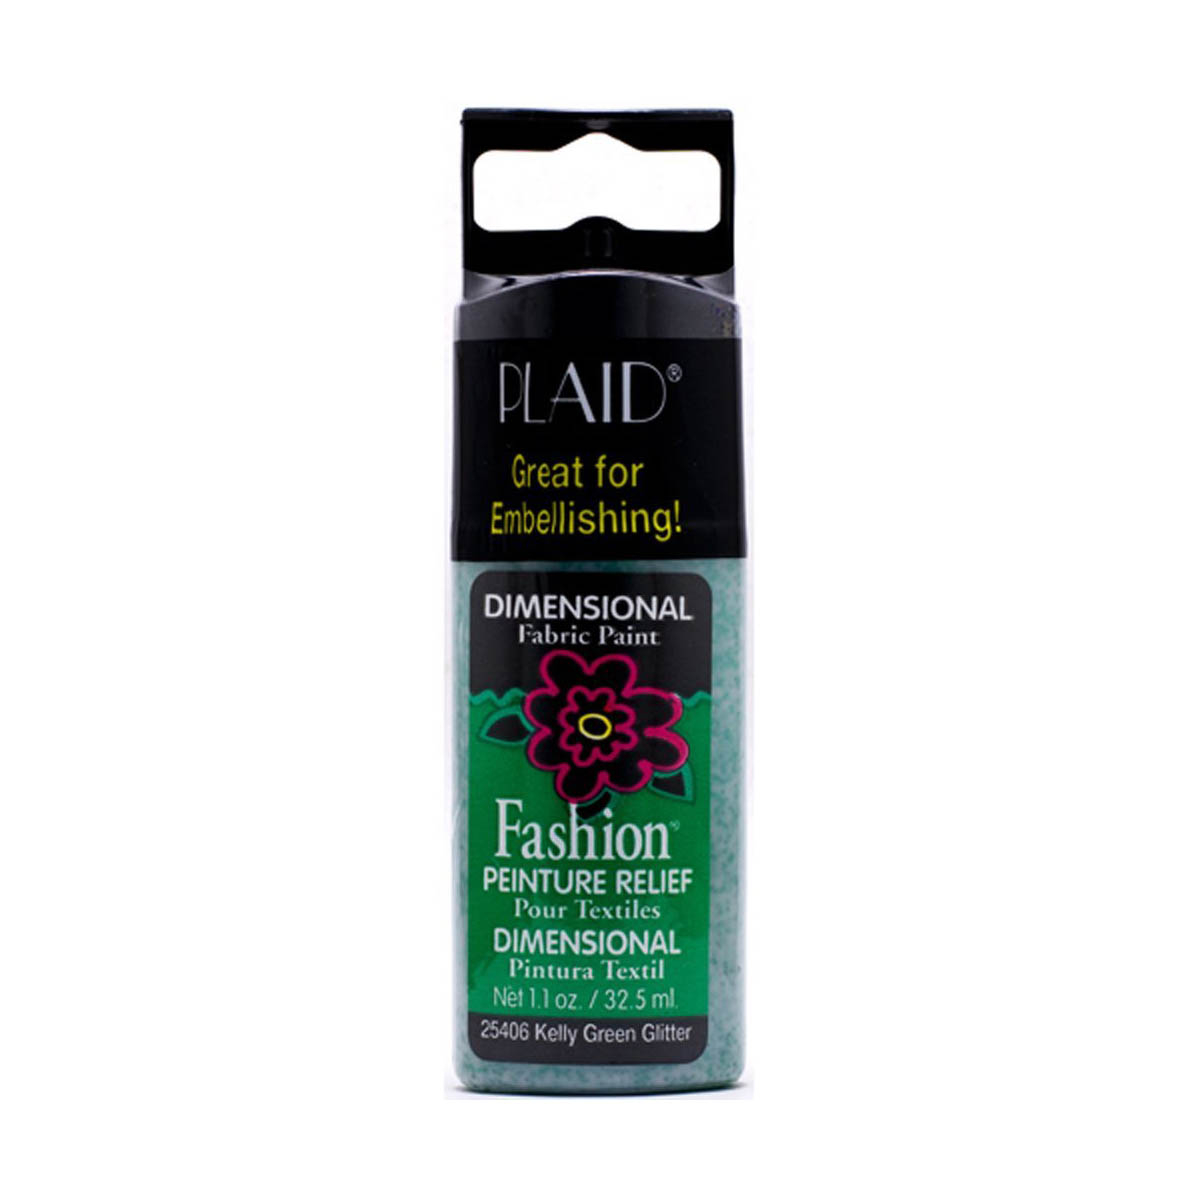 Fashion ® Dimensional Fabric Paint  - Glitter - Kelly Green